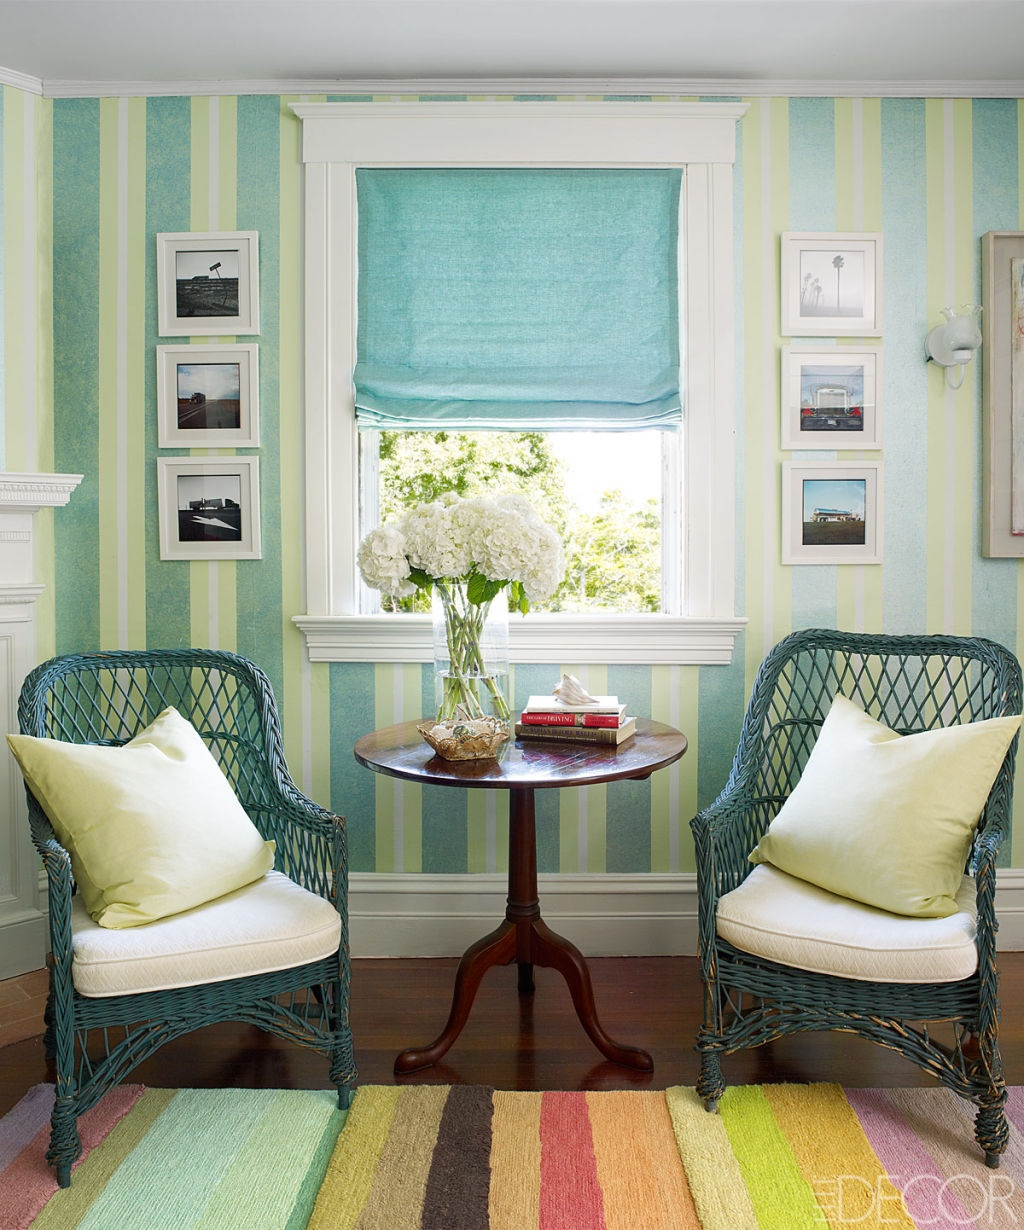 striped décor - Long Island guest room of Amy Fine Collins has striped walls by Robert Hoven and a striped Gene Meyer carpet - Elle Décor via Atticmag